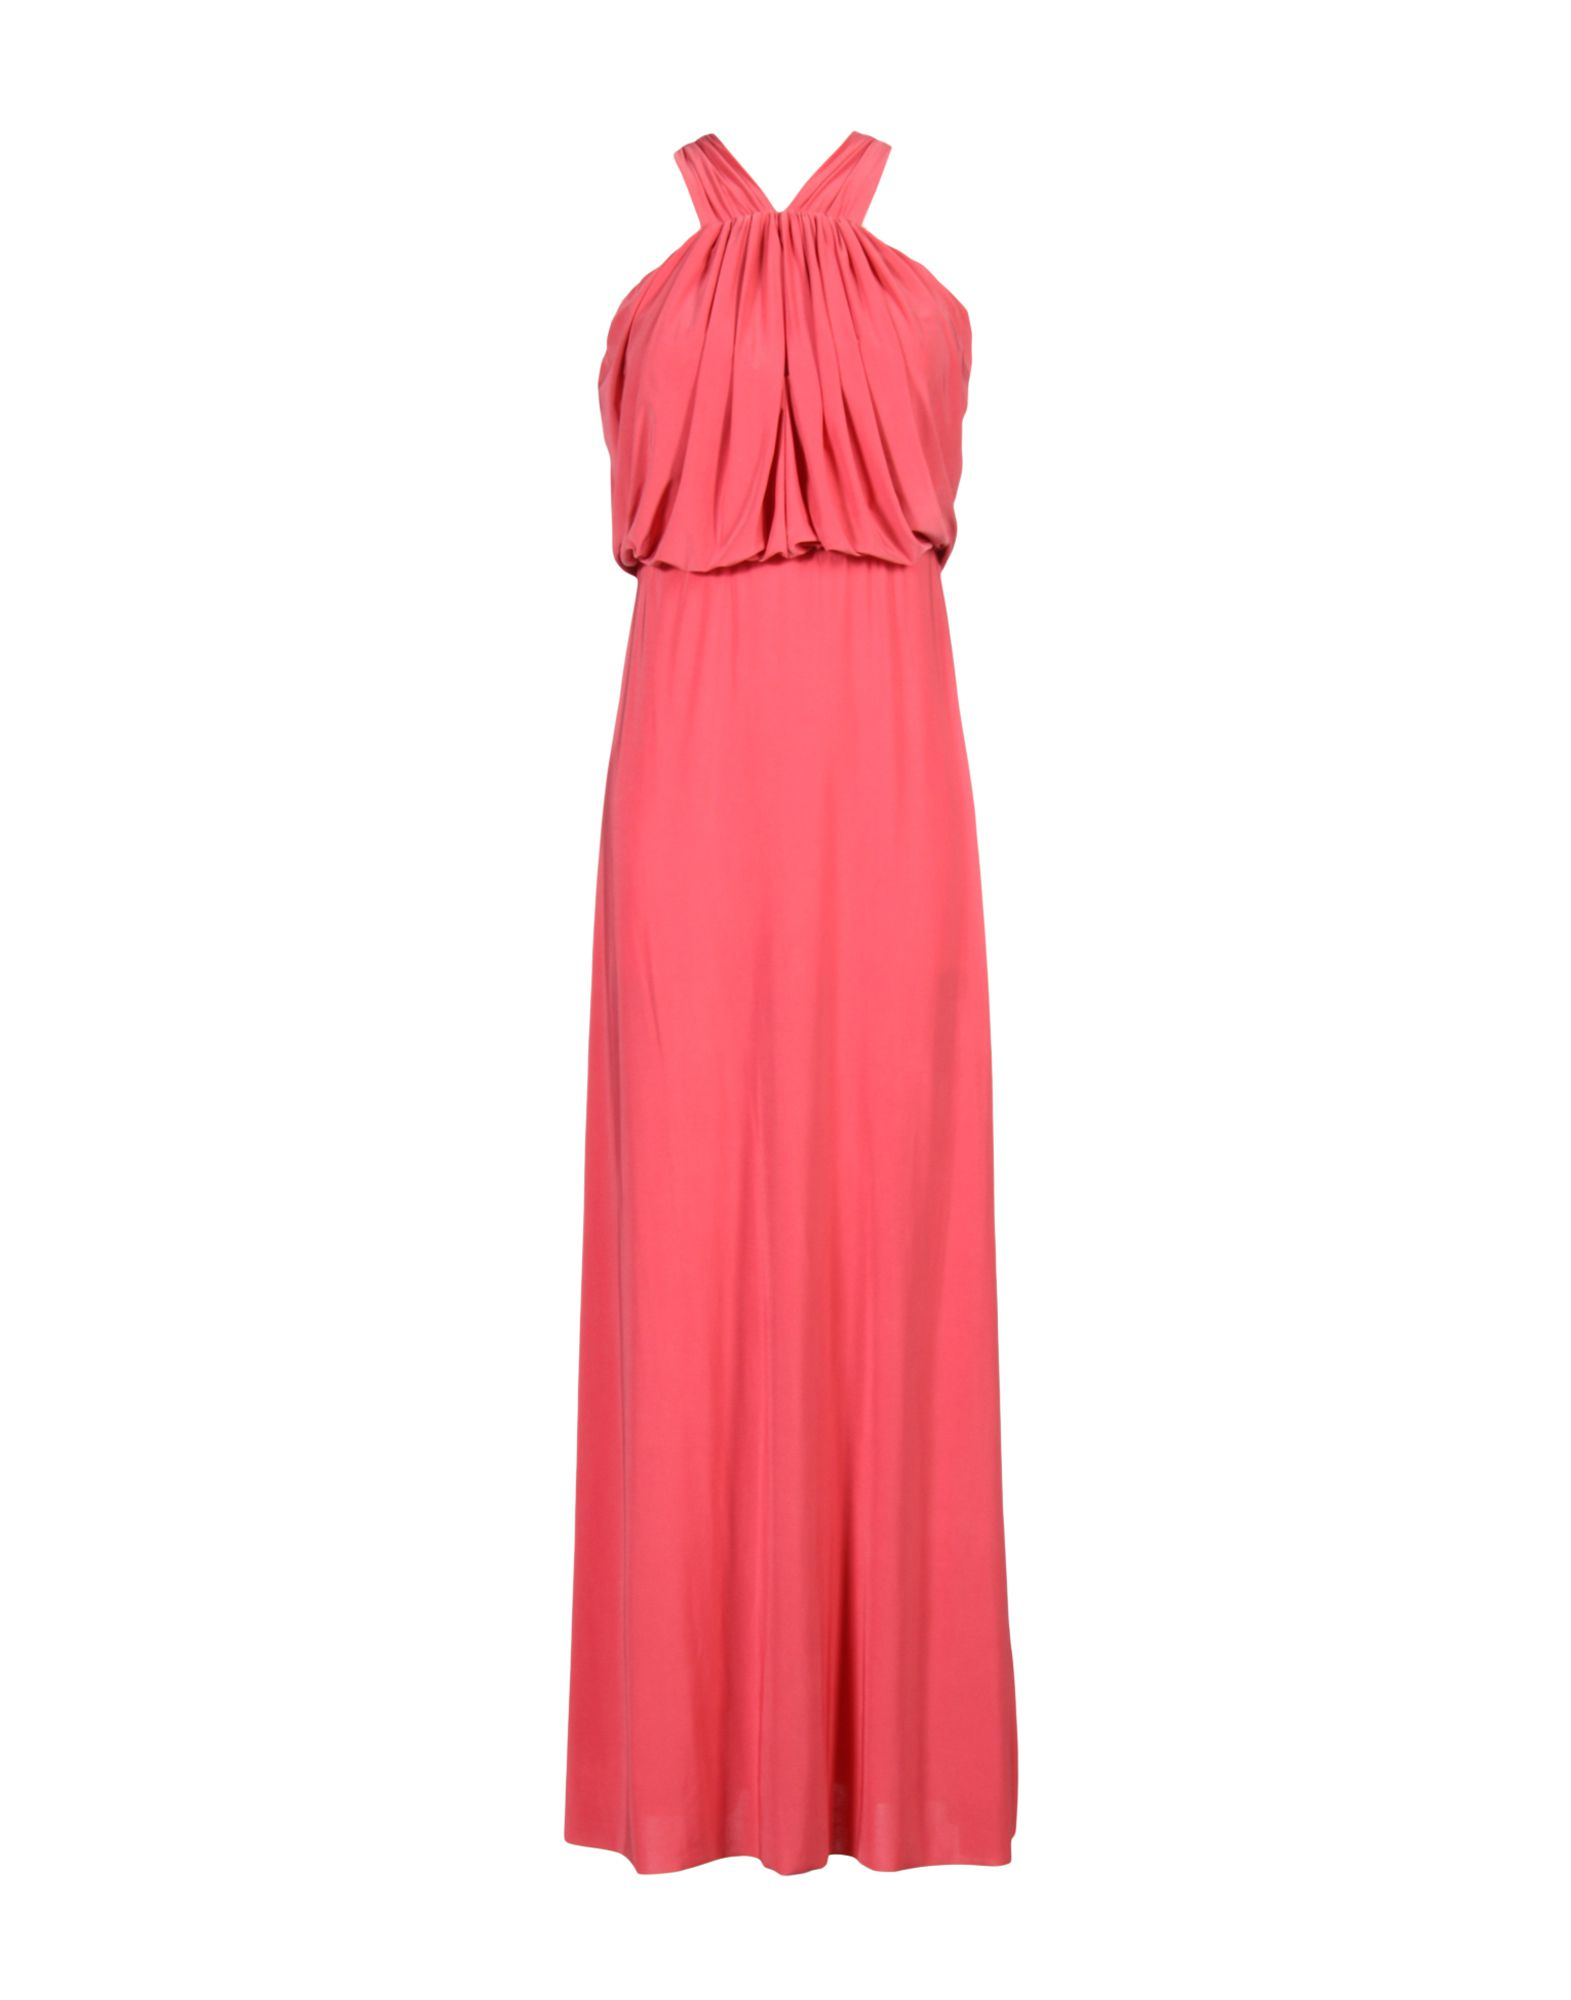 TBAGSLOSANGELES Long Dress in Coral